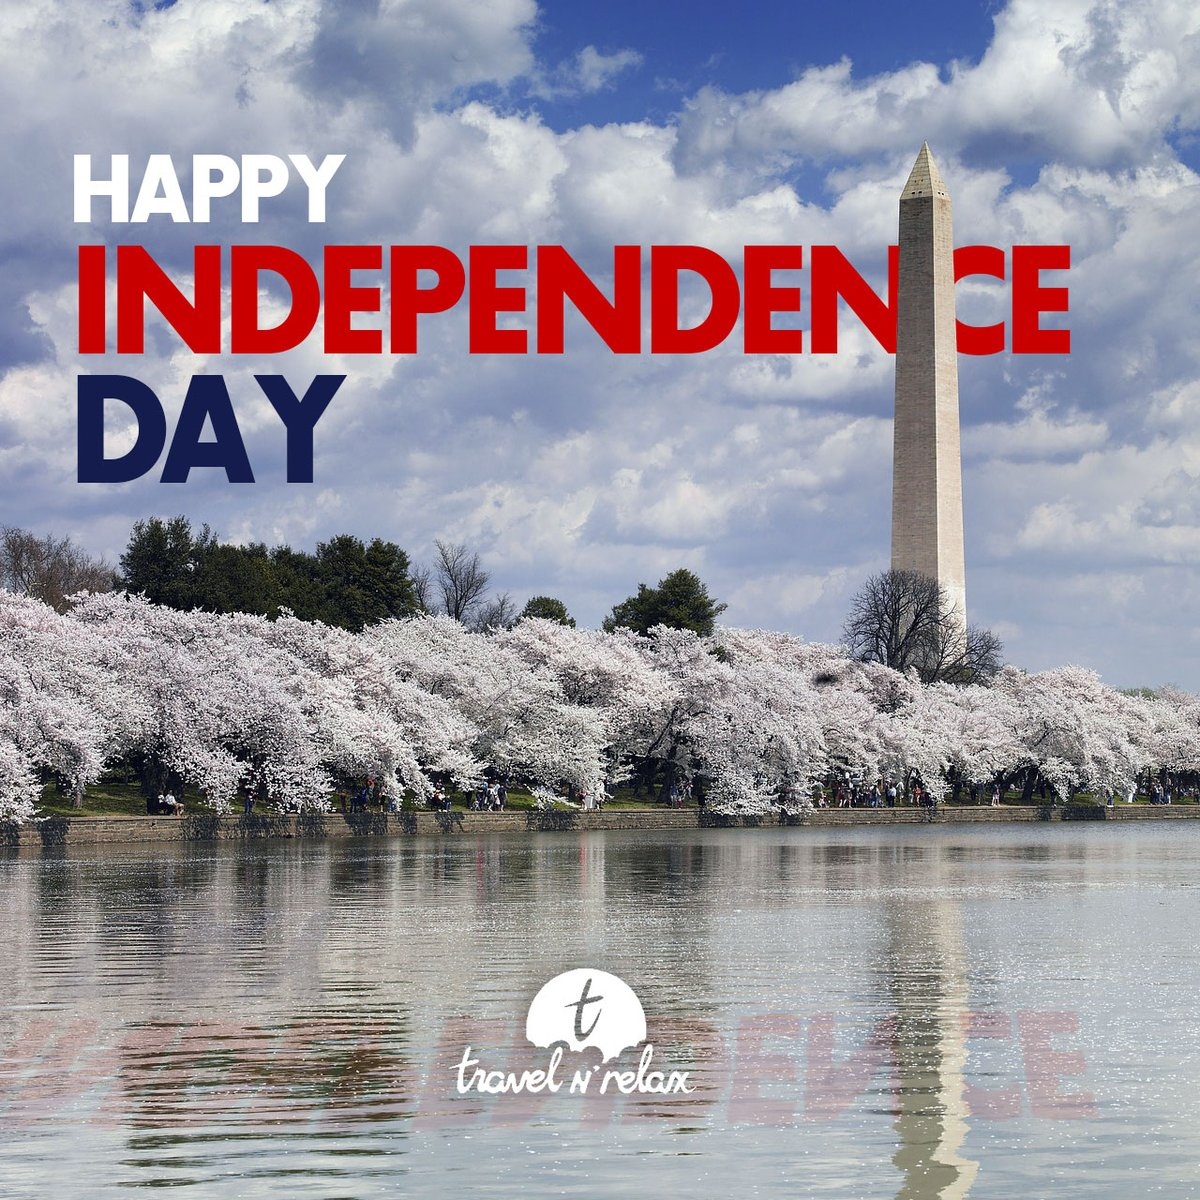 Happy Fourth of July. We hope you enjoy this holiday weekend with your friends. Practice social distancing and be safe!  . . . #travelnrelax  #travelagent #travelgram #independenceday #travelagency pic.twitter.com/ueBUrkPxcg